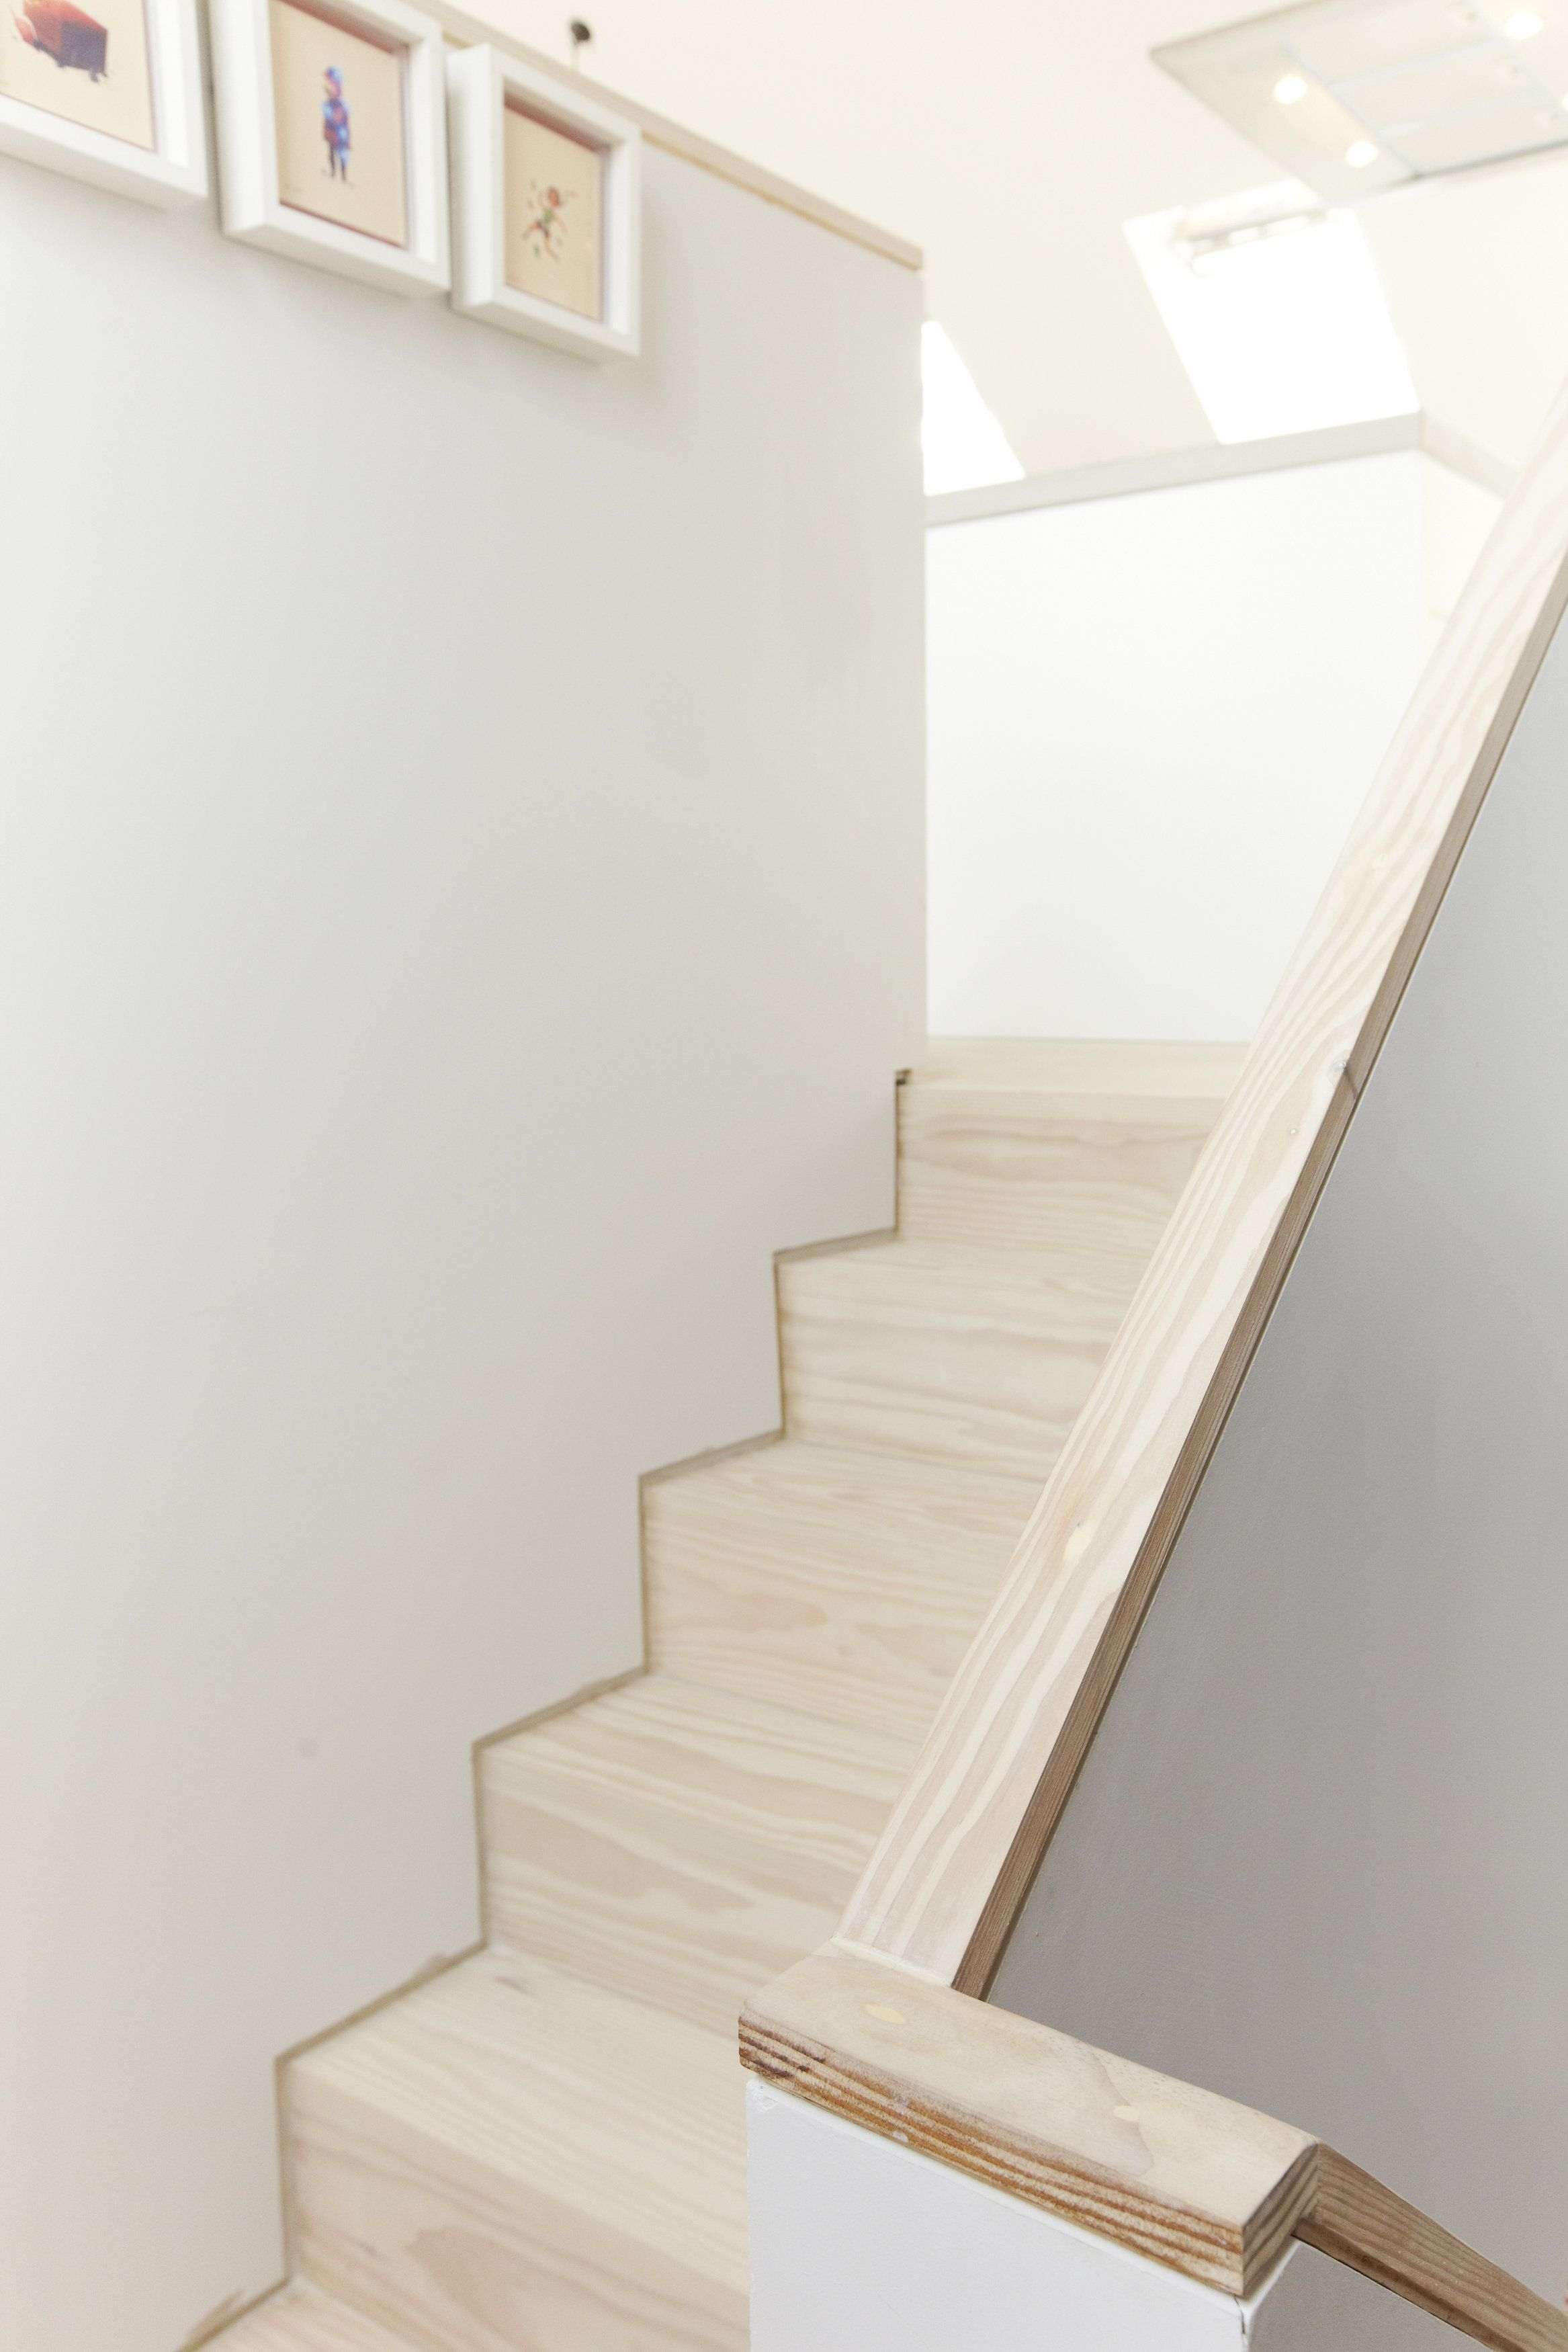 Shadow Gap Staircase Lighting: Stairwell With Shadow Gap Detail In Douglas Fir